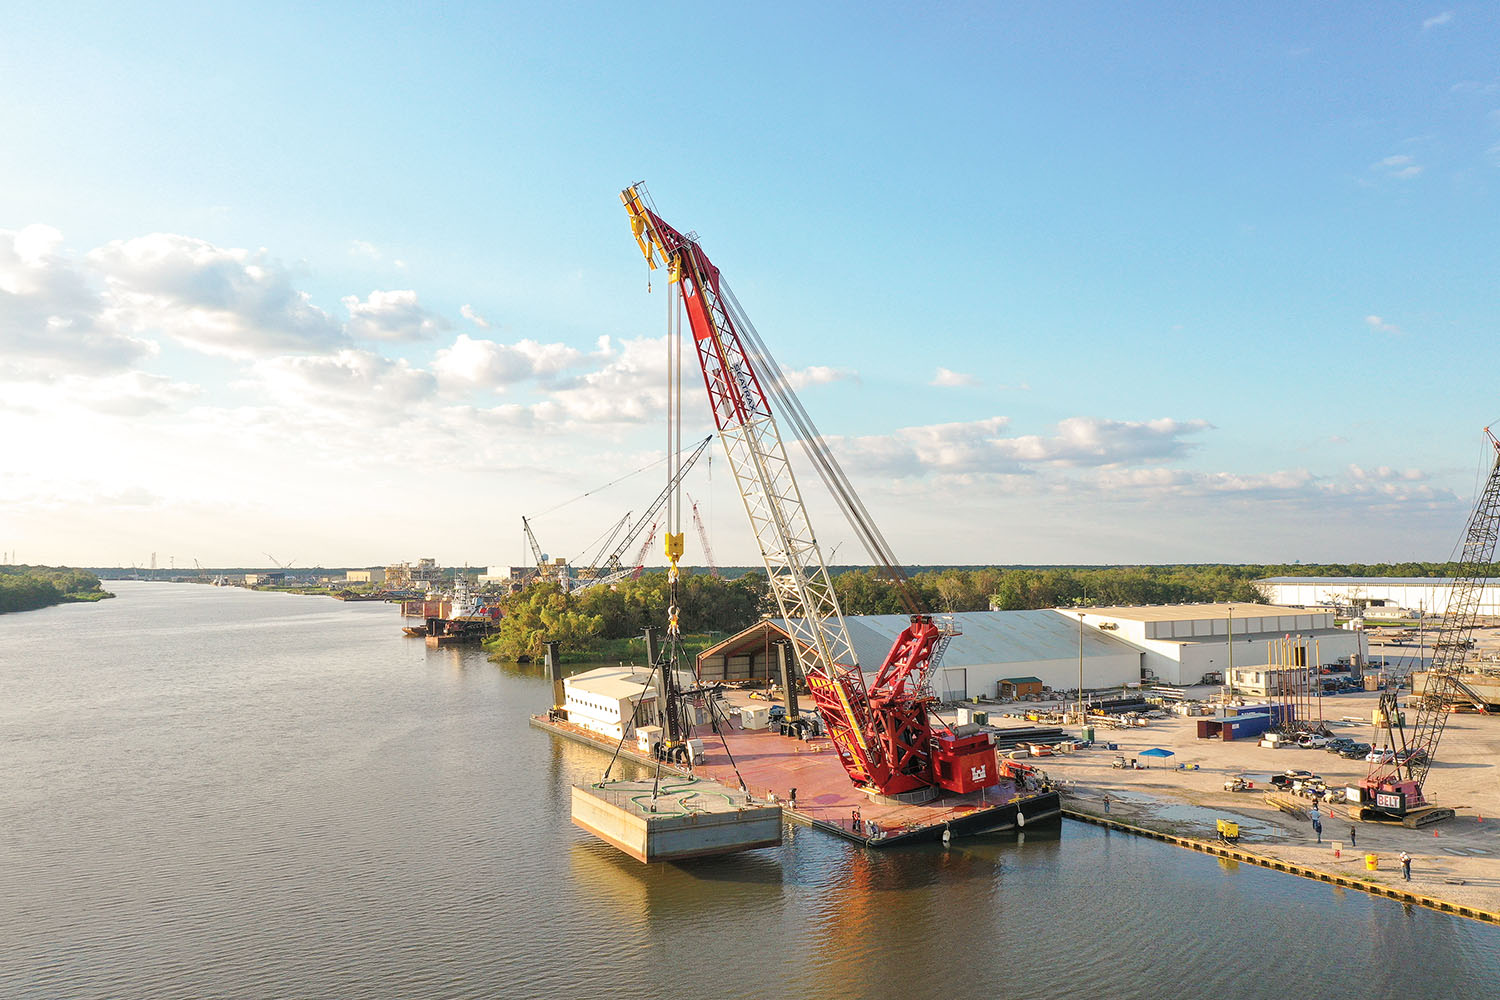 The new crane Quad Cities was designed and built by Seatrax, while the barge platform was built by Conrad Shipyards. (Photo courtesy of Seatrax Inc.)